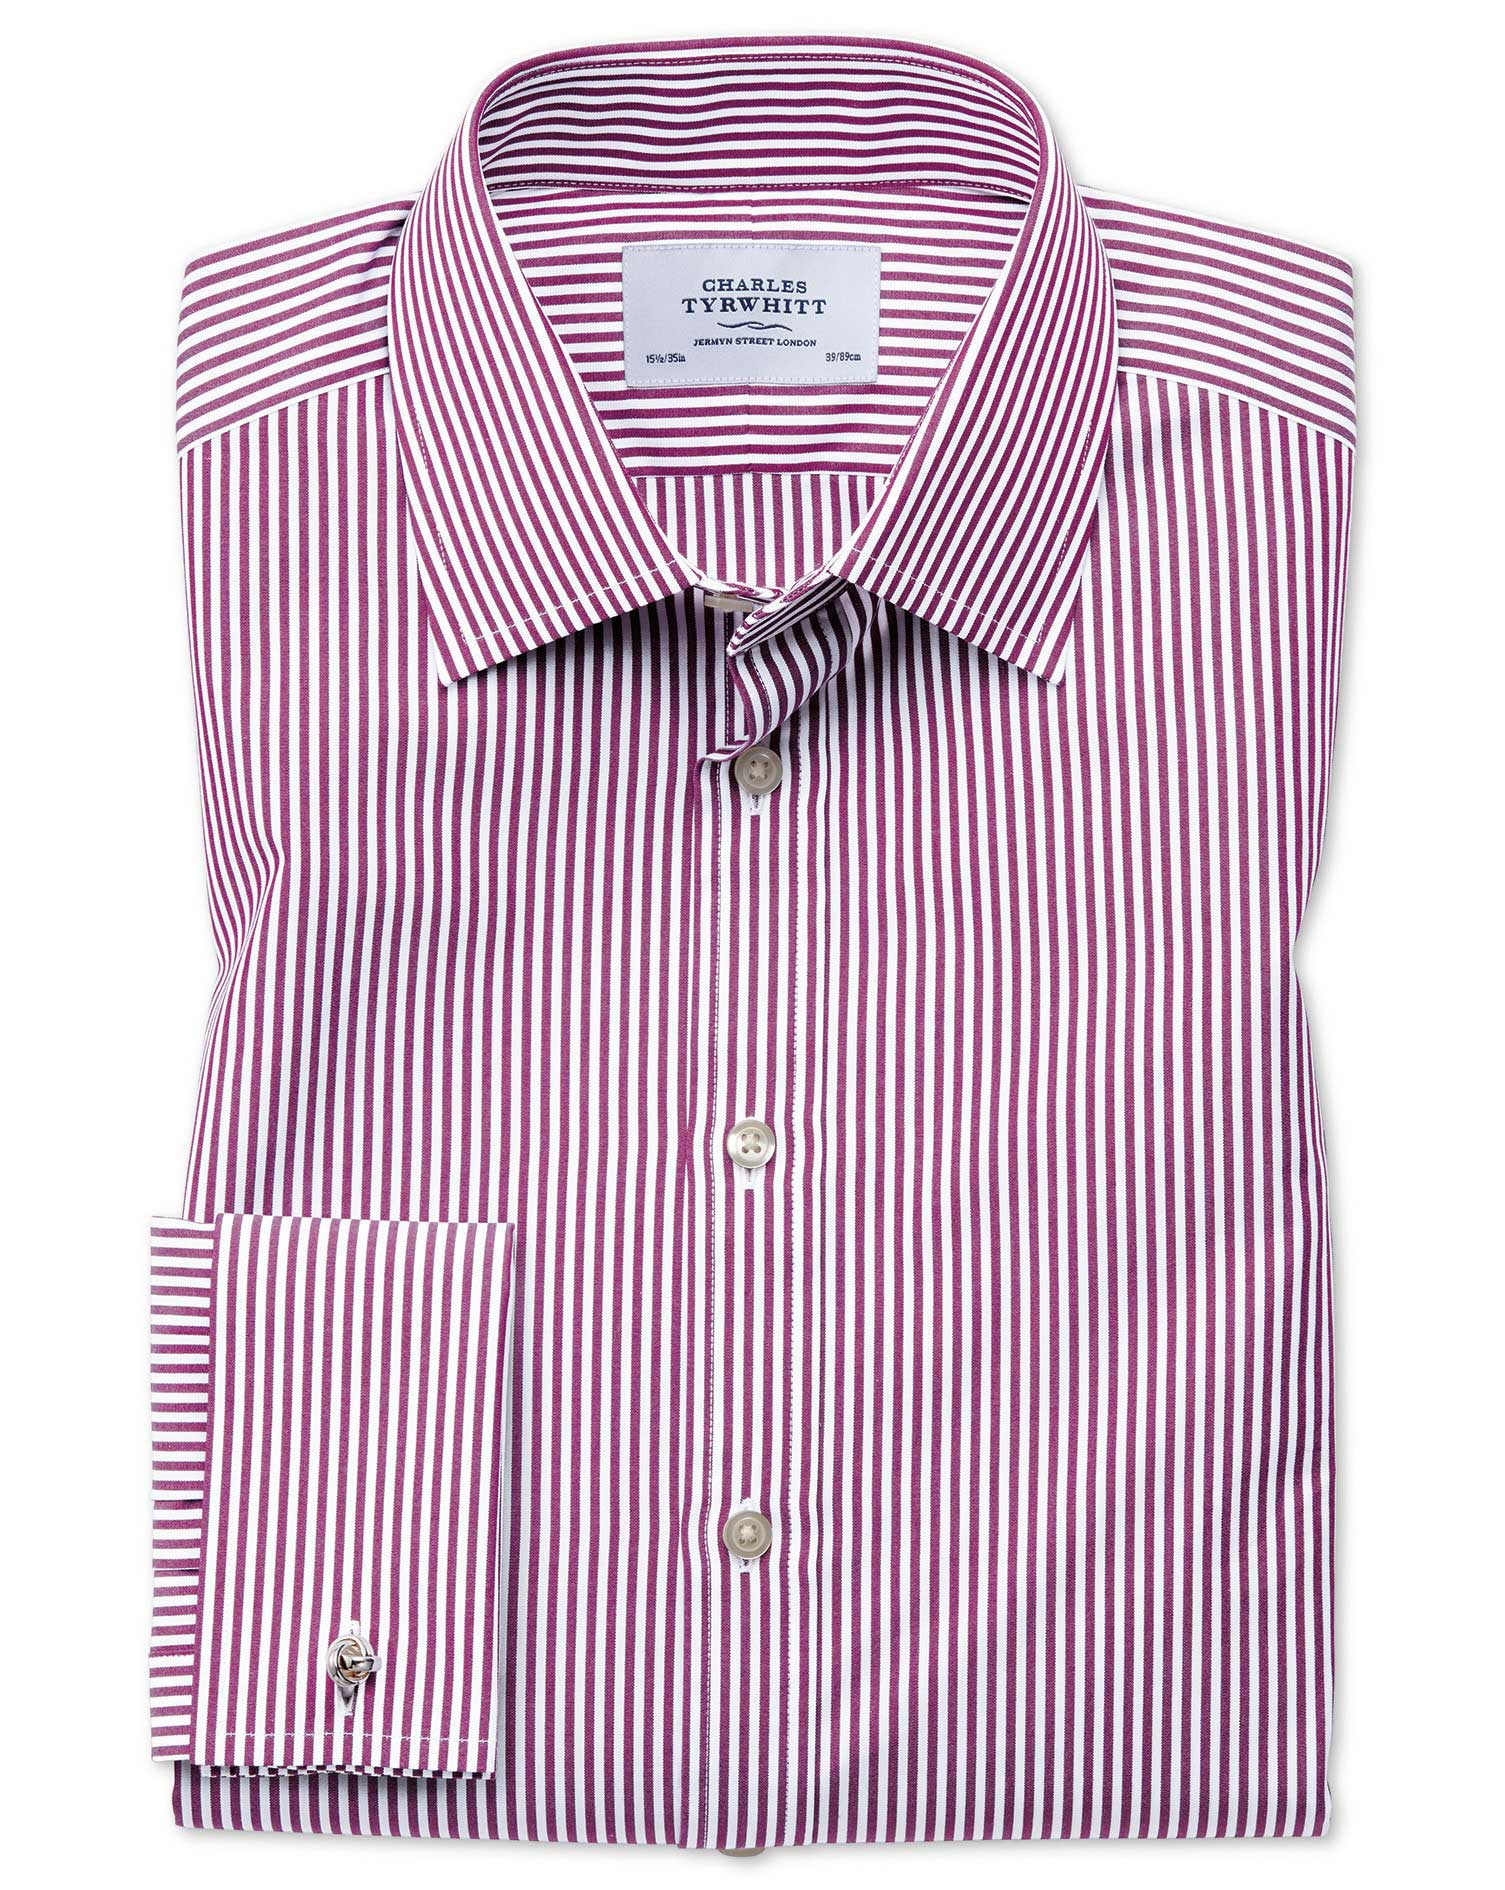 Slim Fit Bengal Stripe Purple Cotton Formal Shirt Double Cuff Size 15/34 by Charles Tyrwhitt